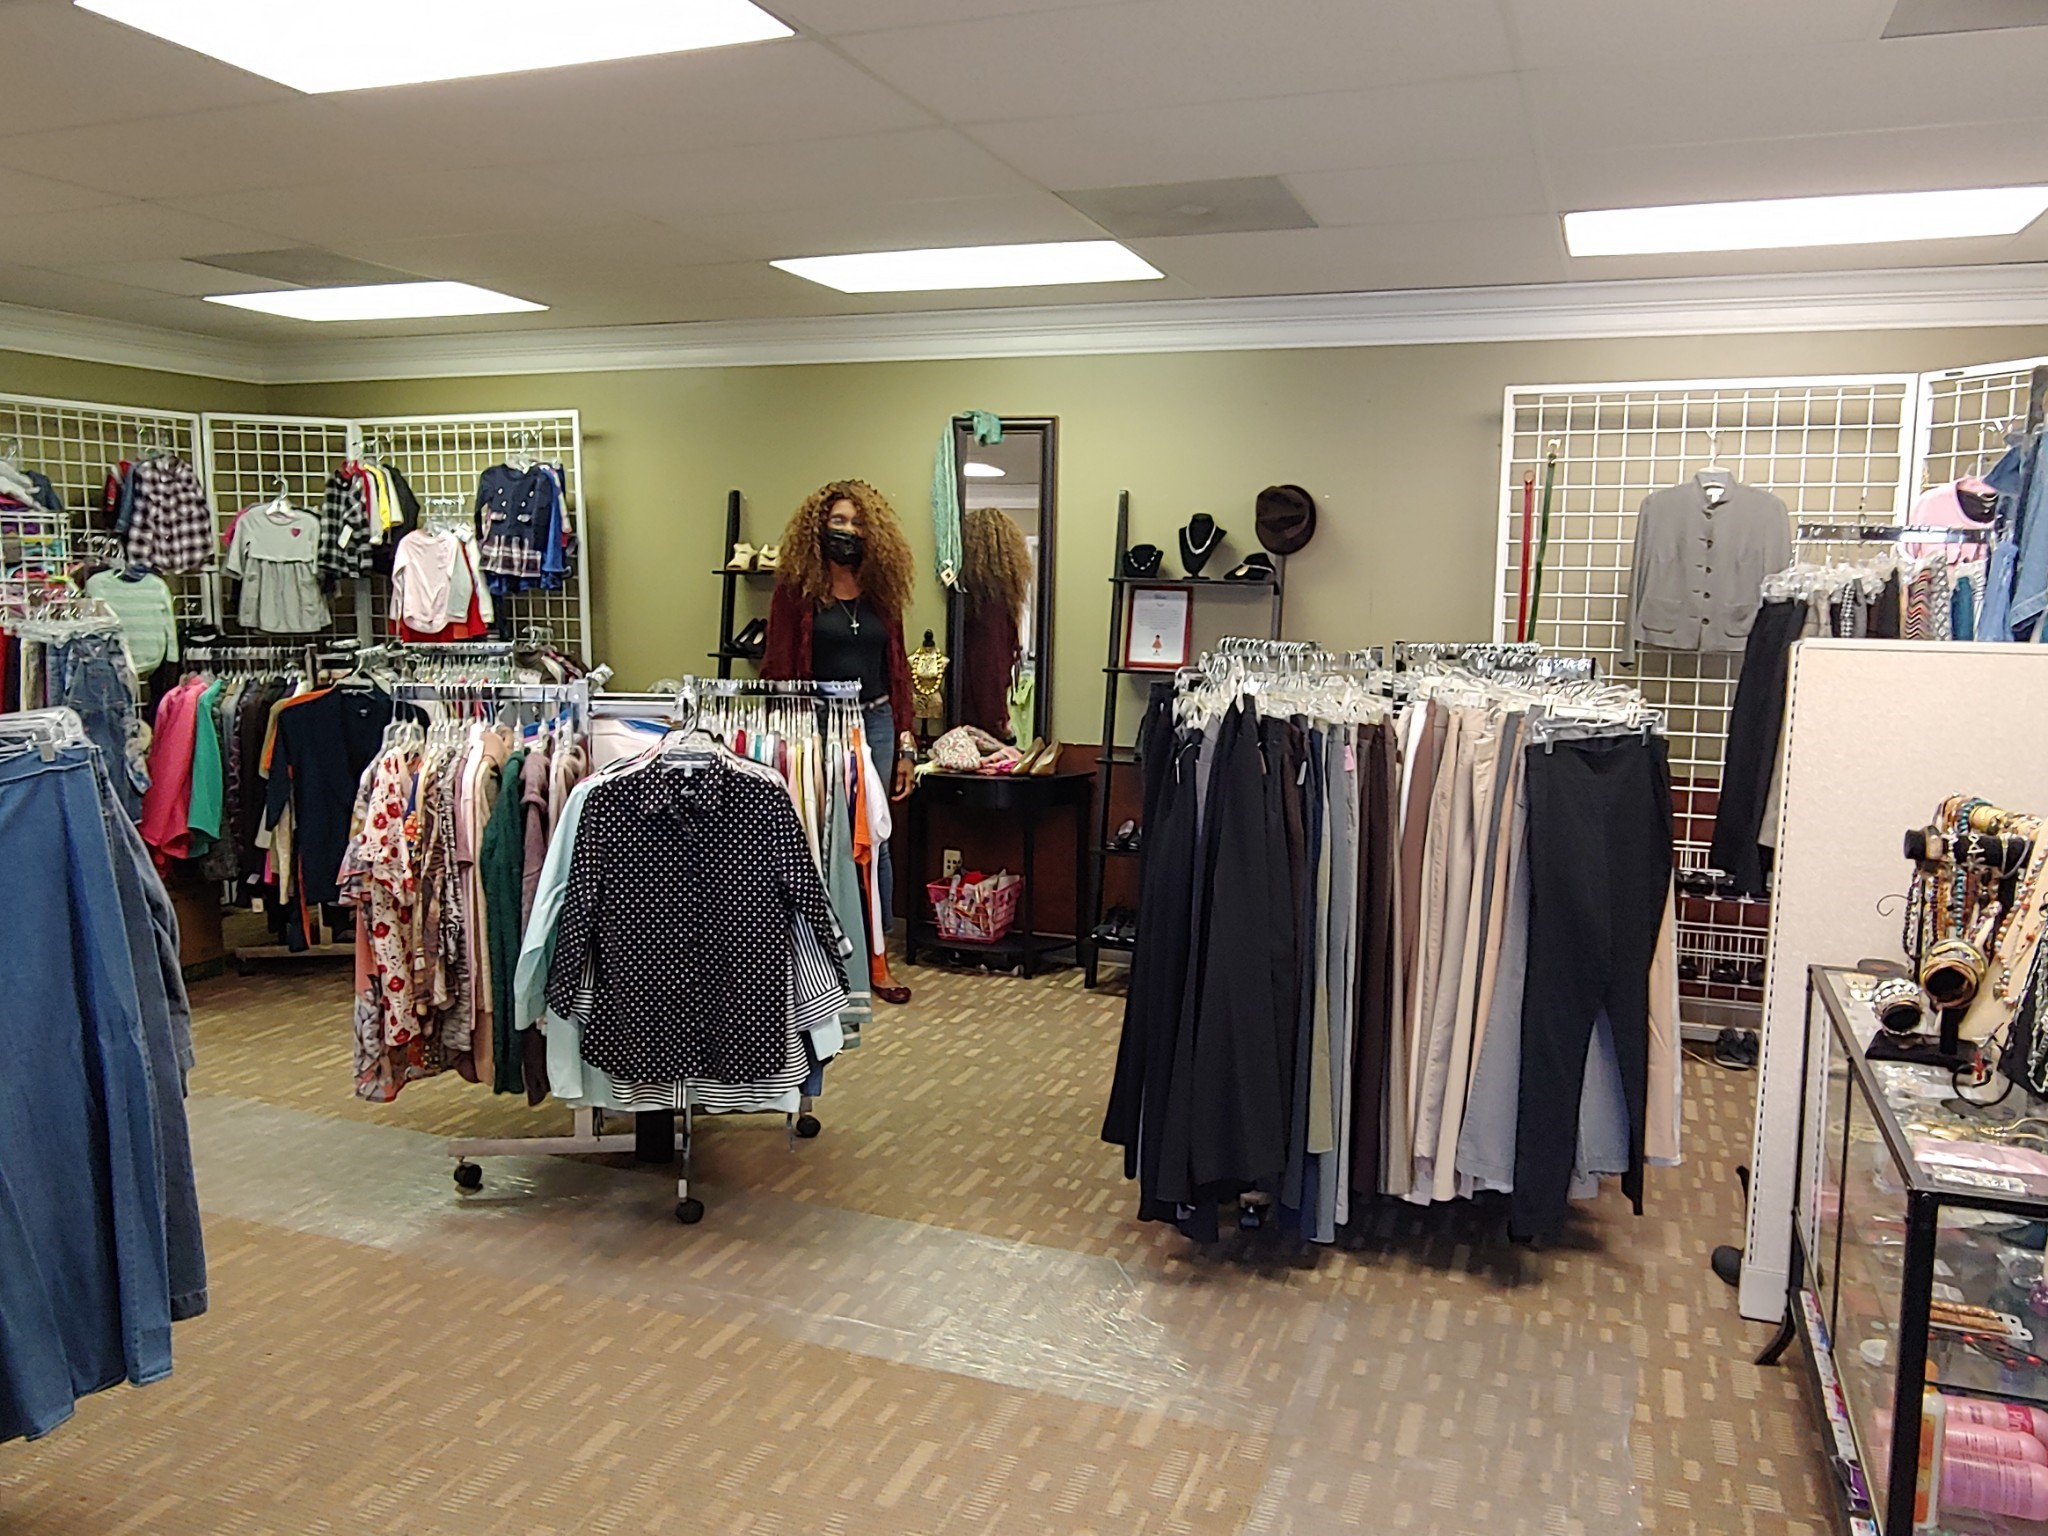 Kingdom Closet & Boutique: Local Gem & Great Place to Donate Clothing